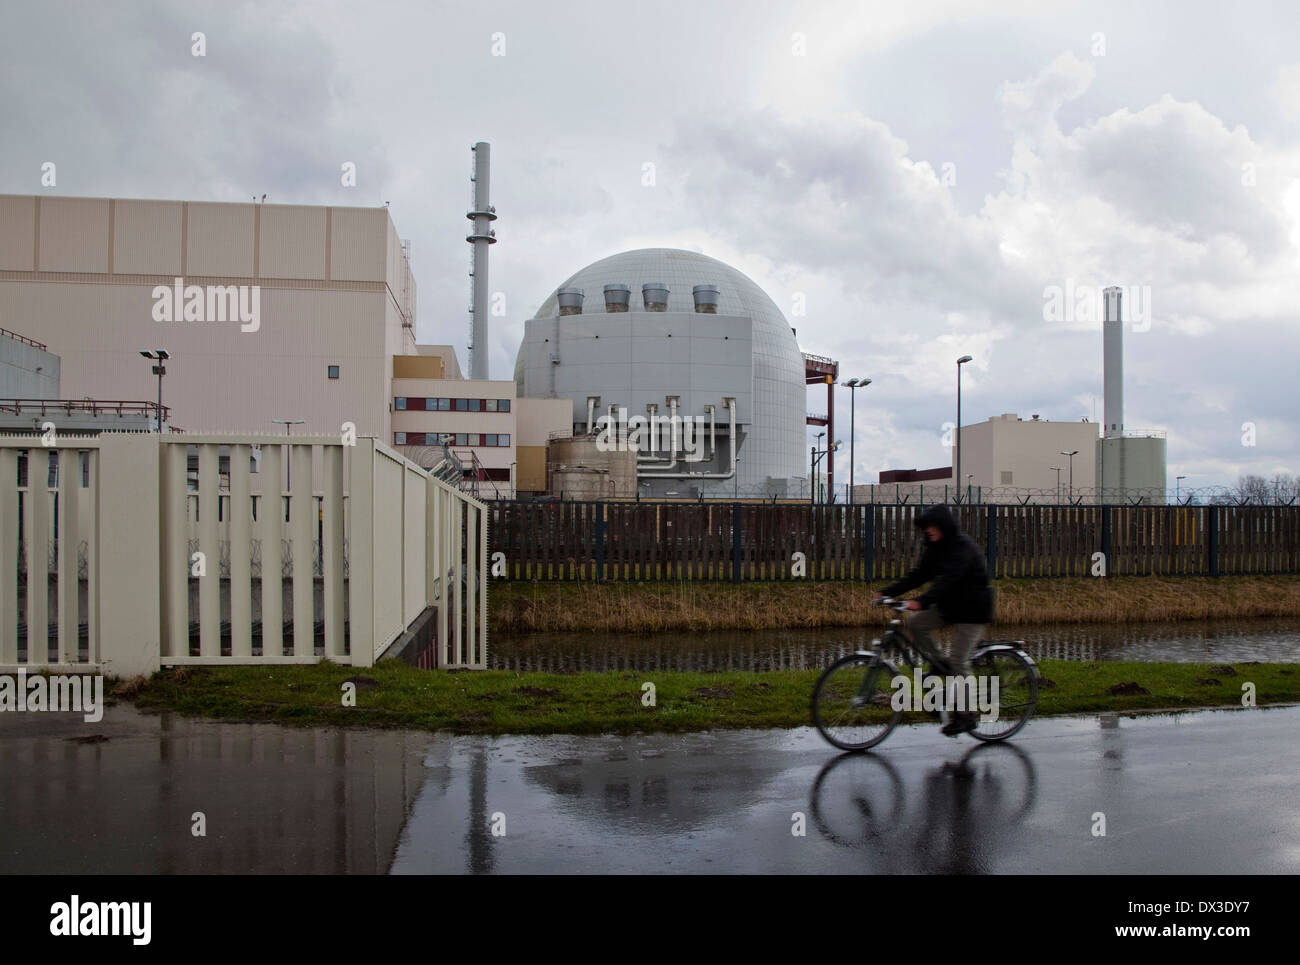 Brokdorf nuclear power plant - Stock Image